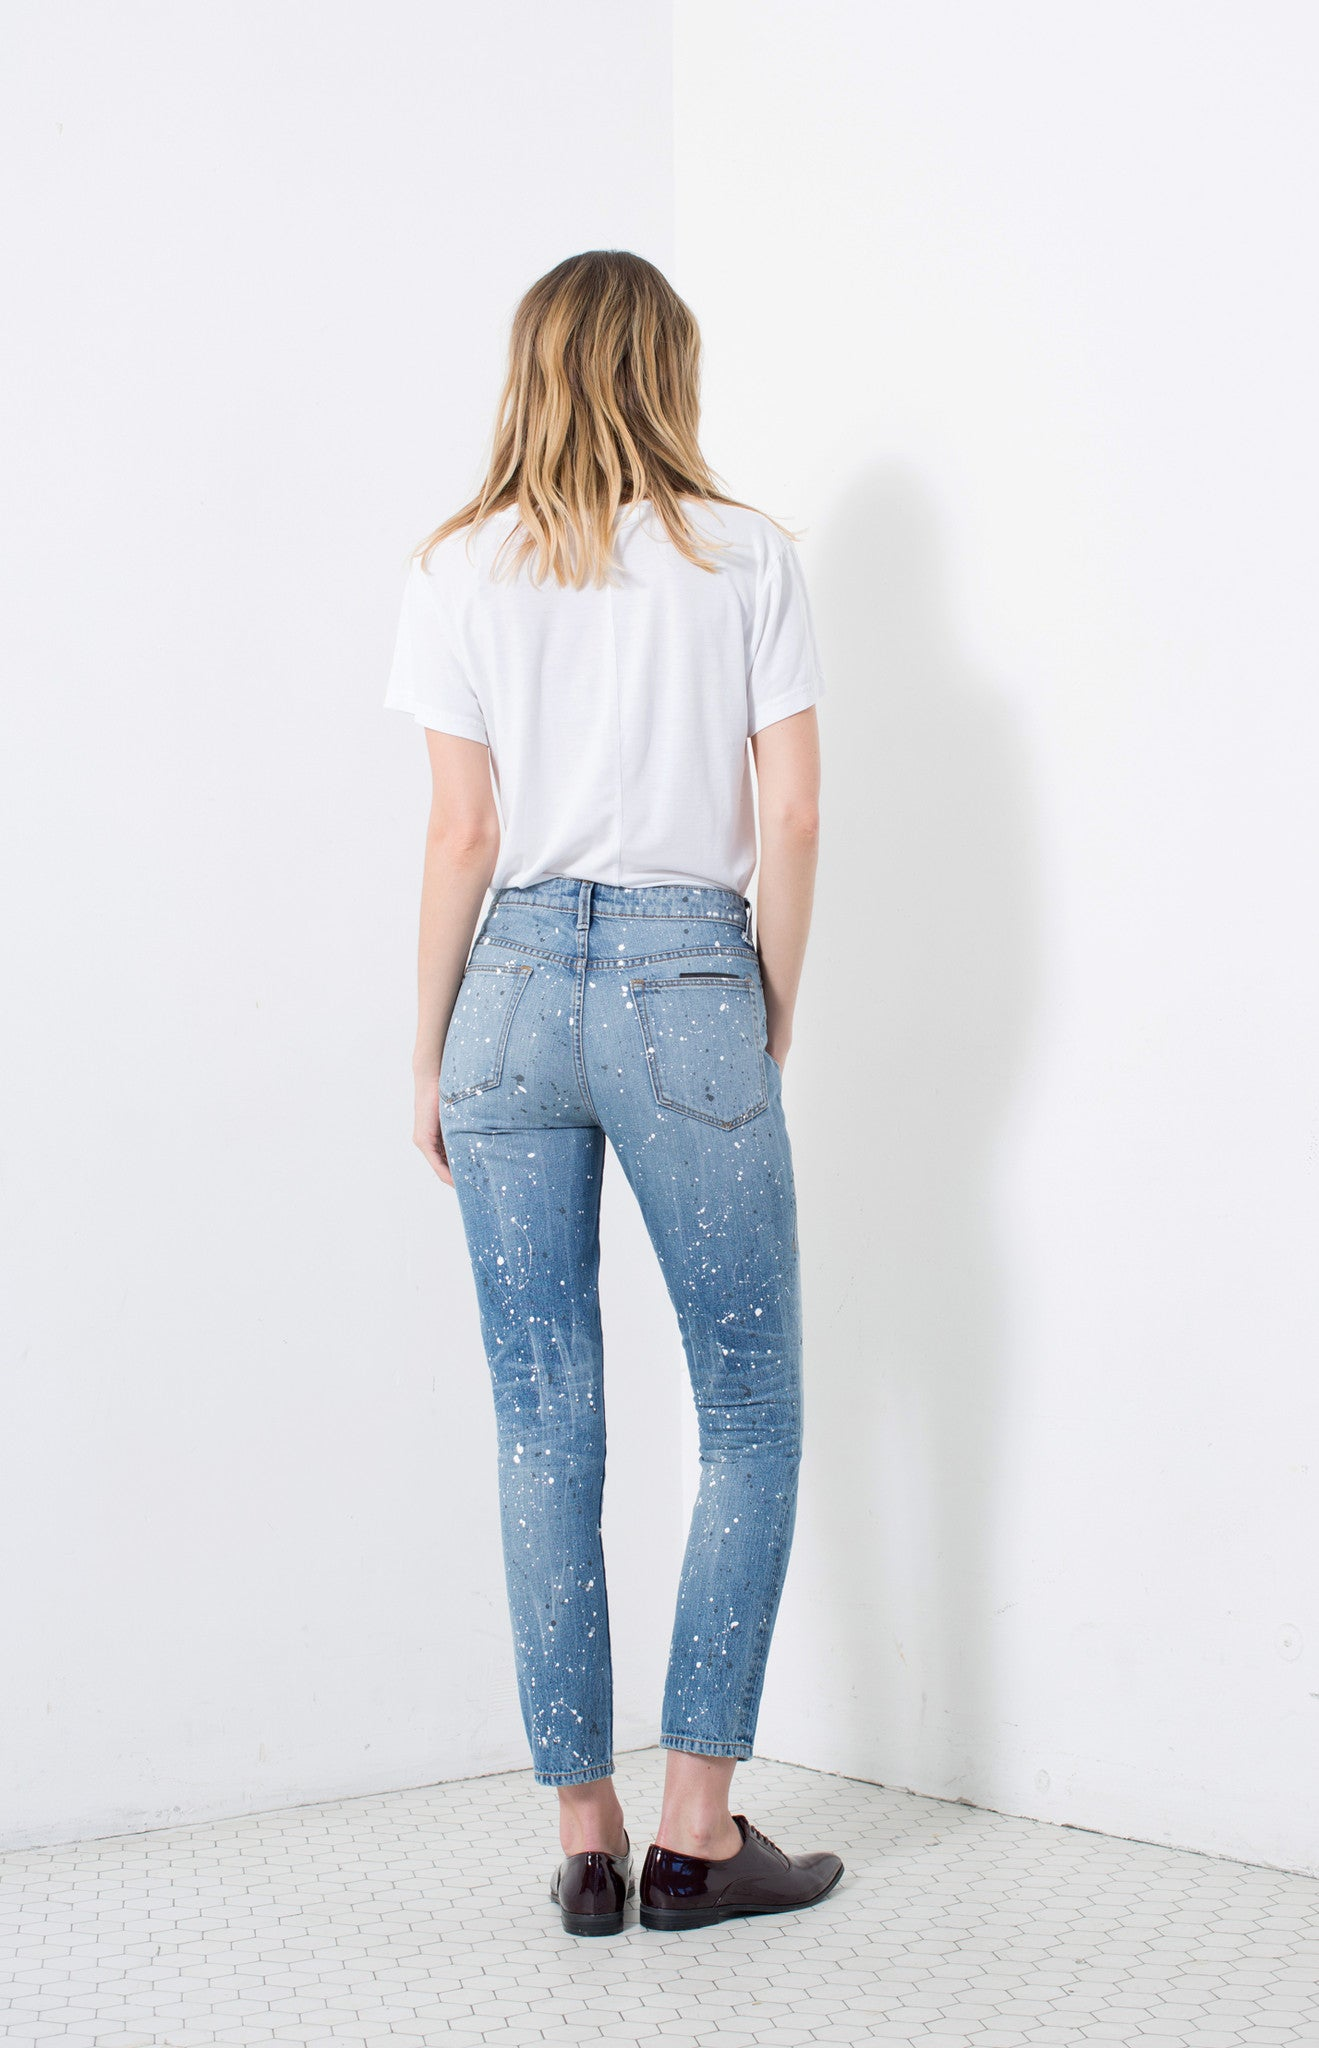 HIGH RISE SLIM in JACKSON | MADE TO ORDER